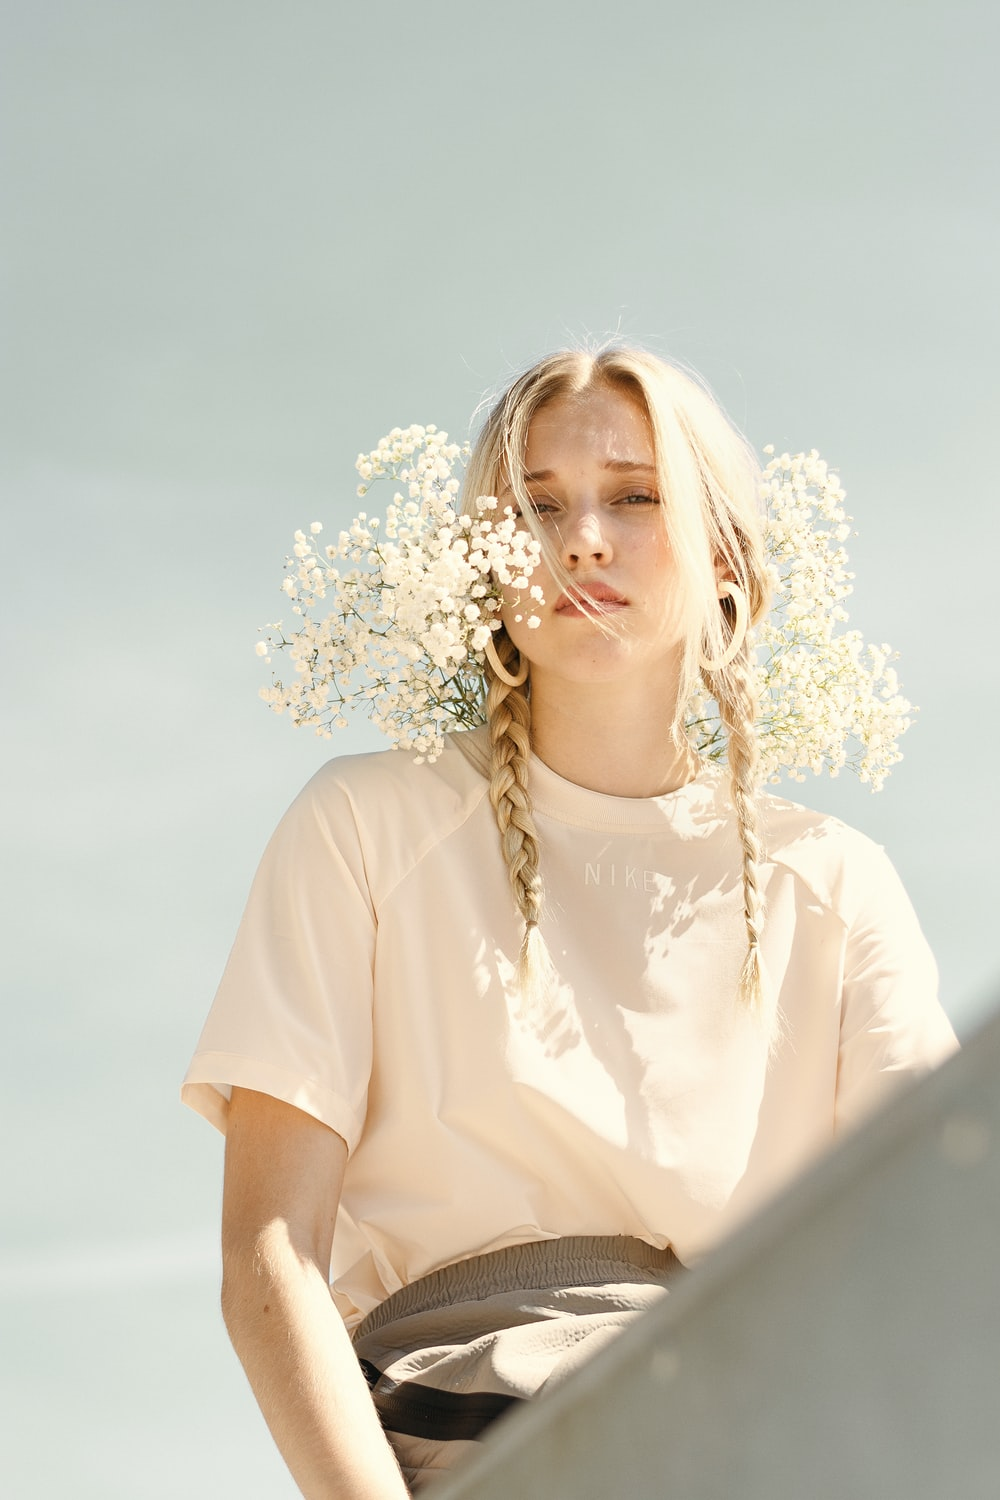 woman in white shirt with white flowers on her ear